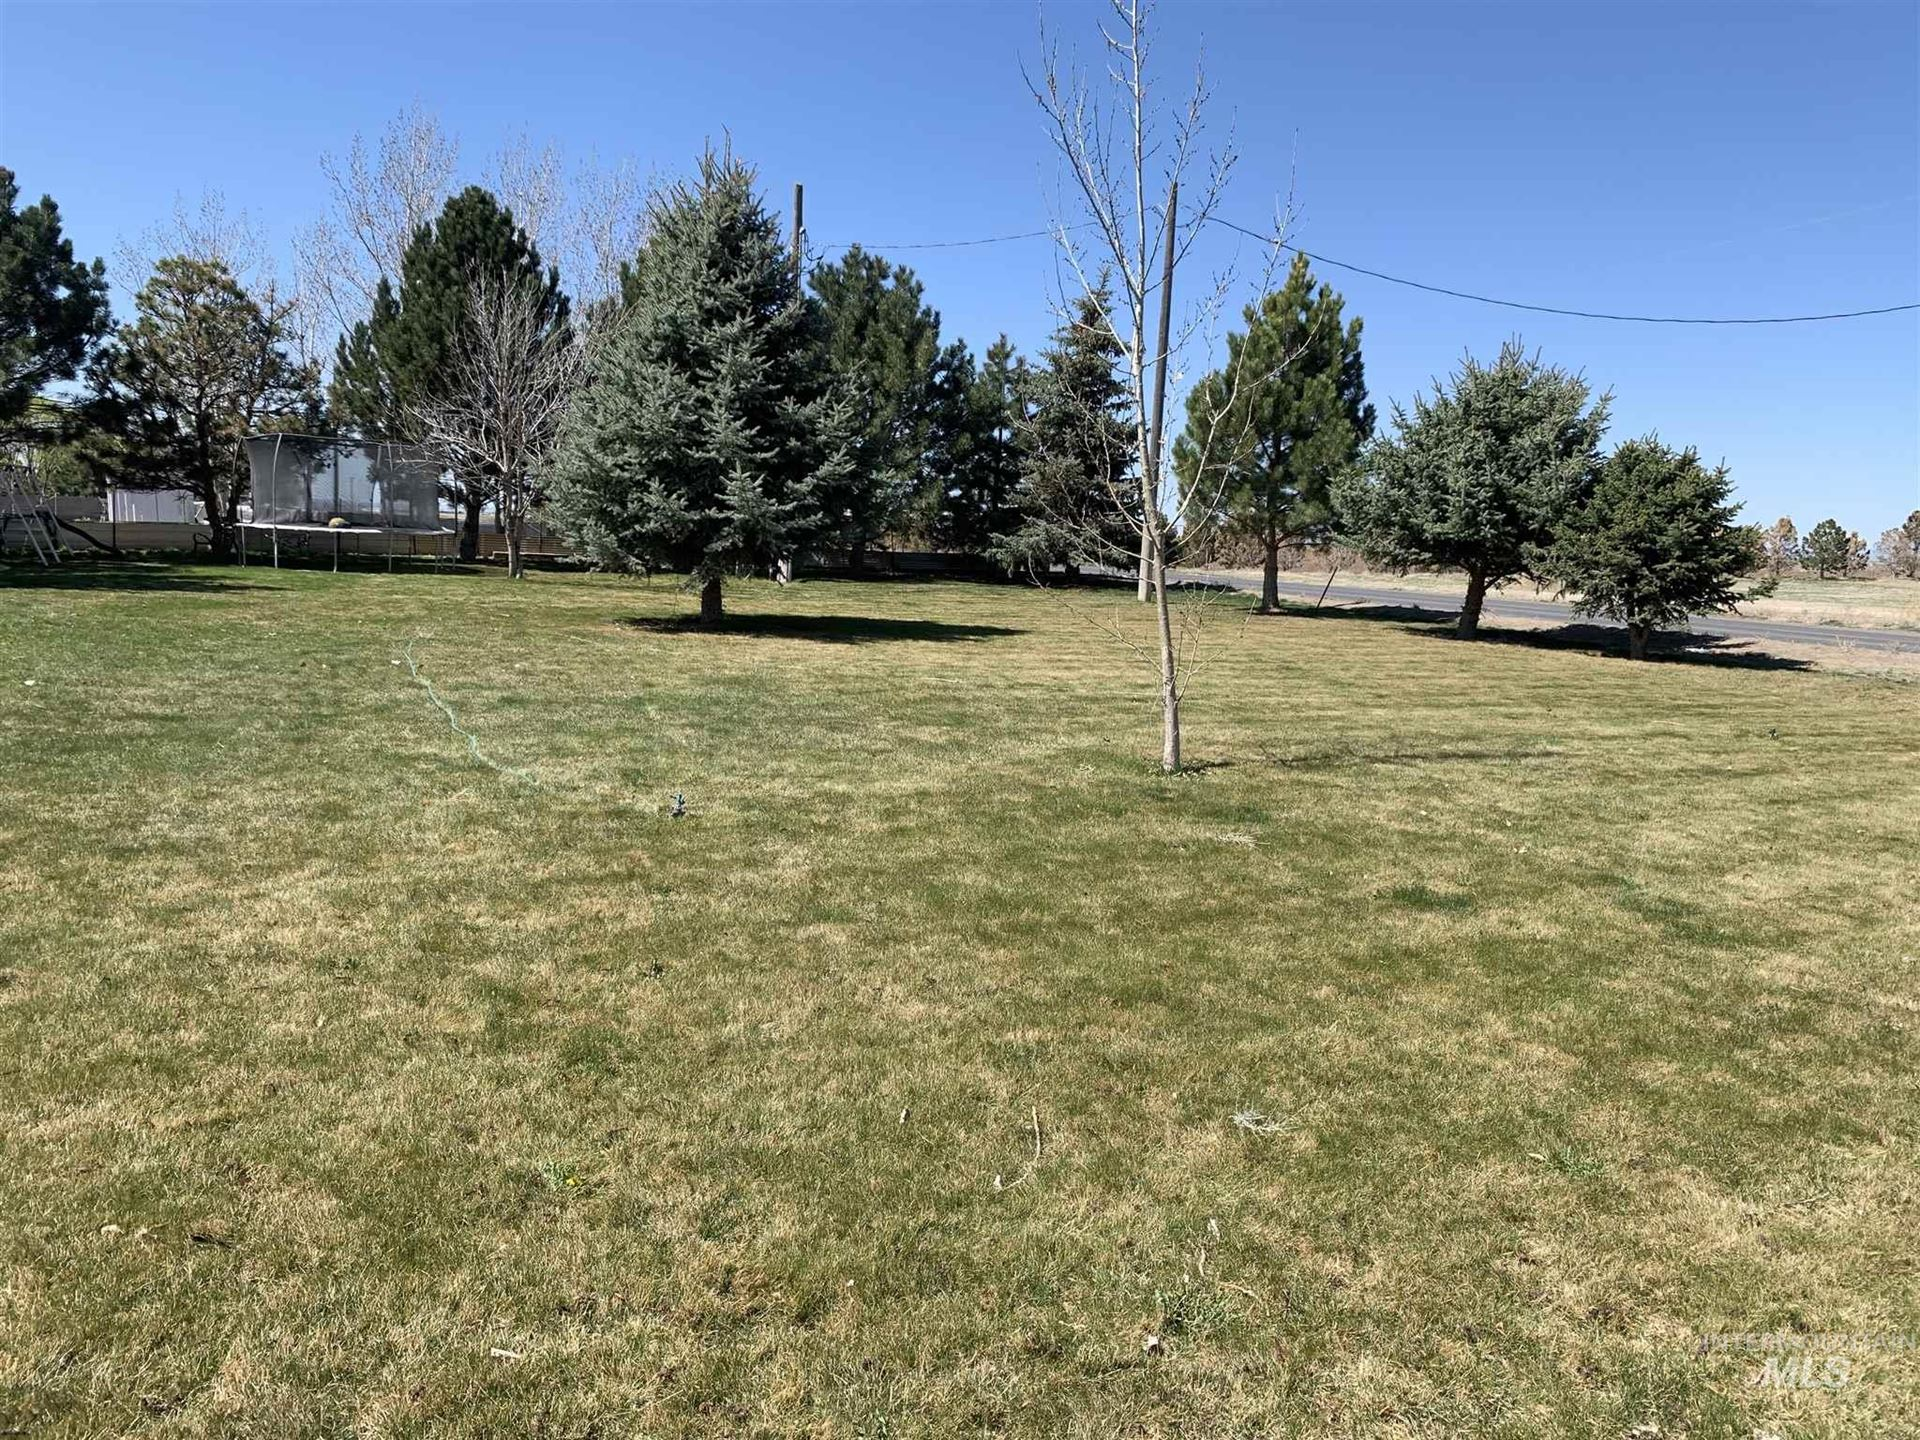 Photo of 2293 E 3600 S, Wendell, ID 83355 (MLS # 98798840)